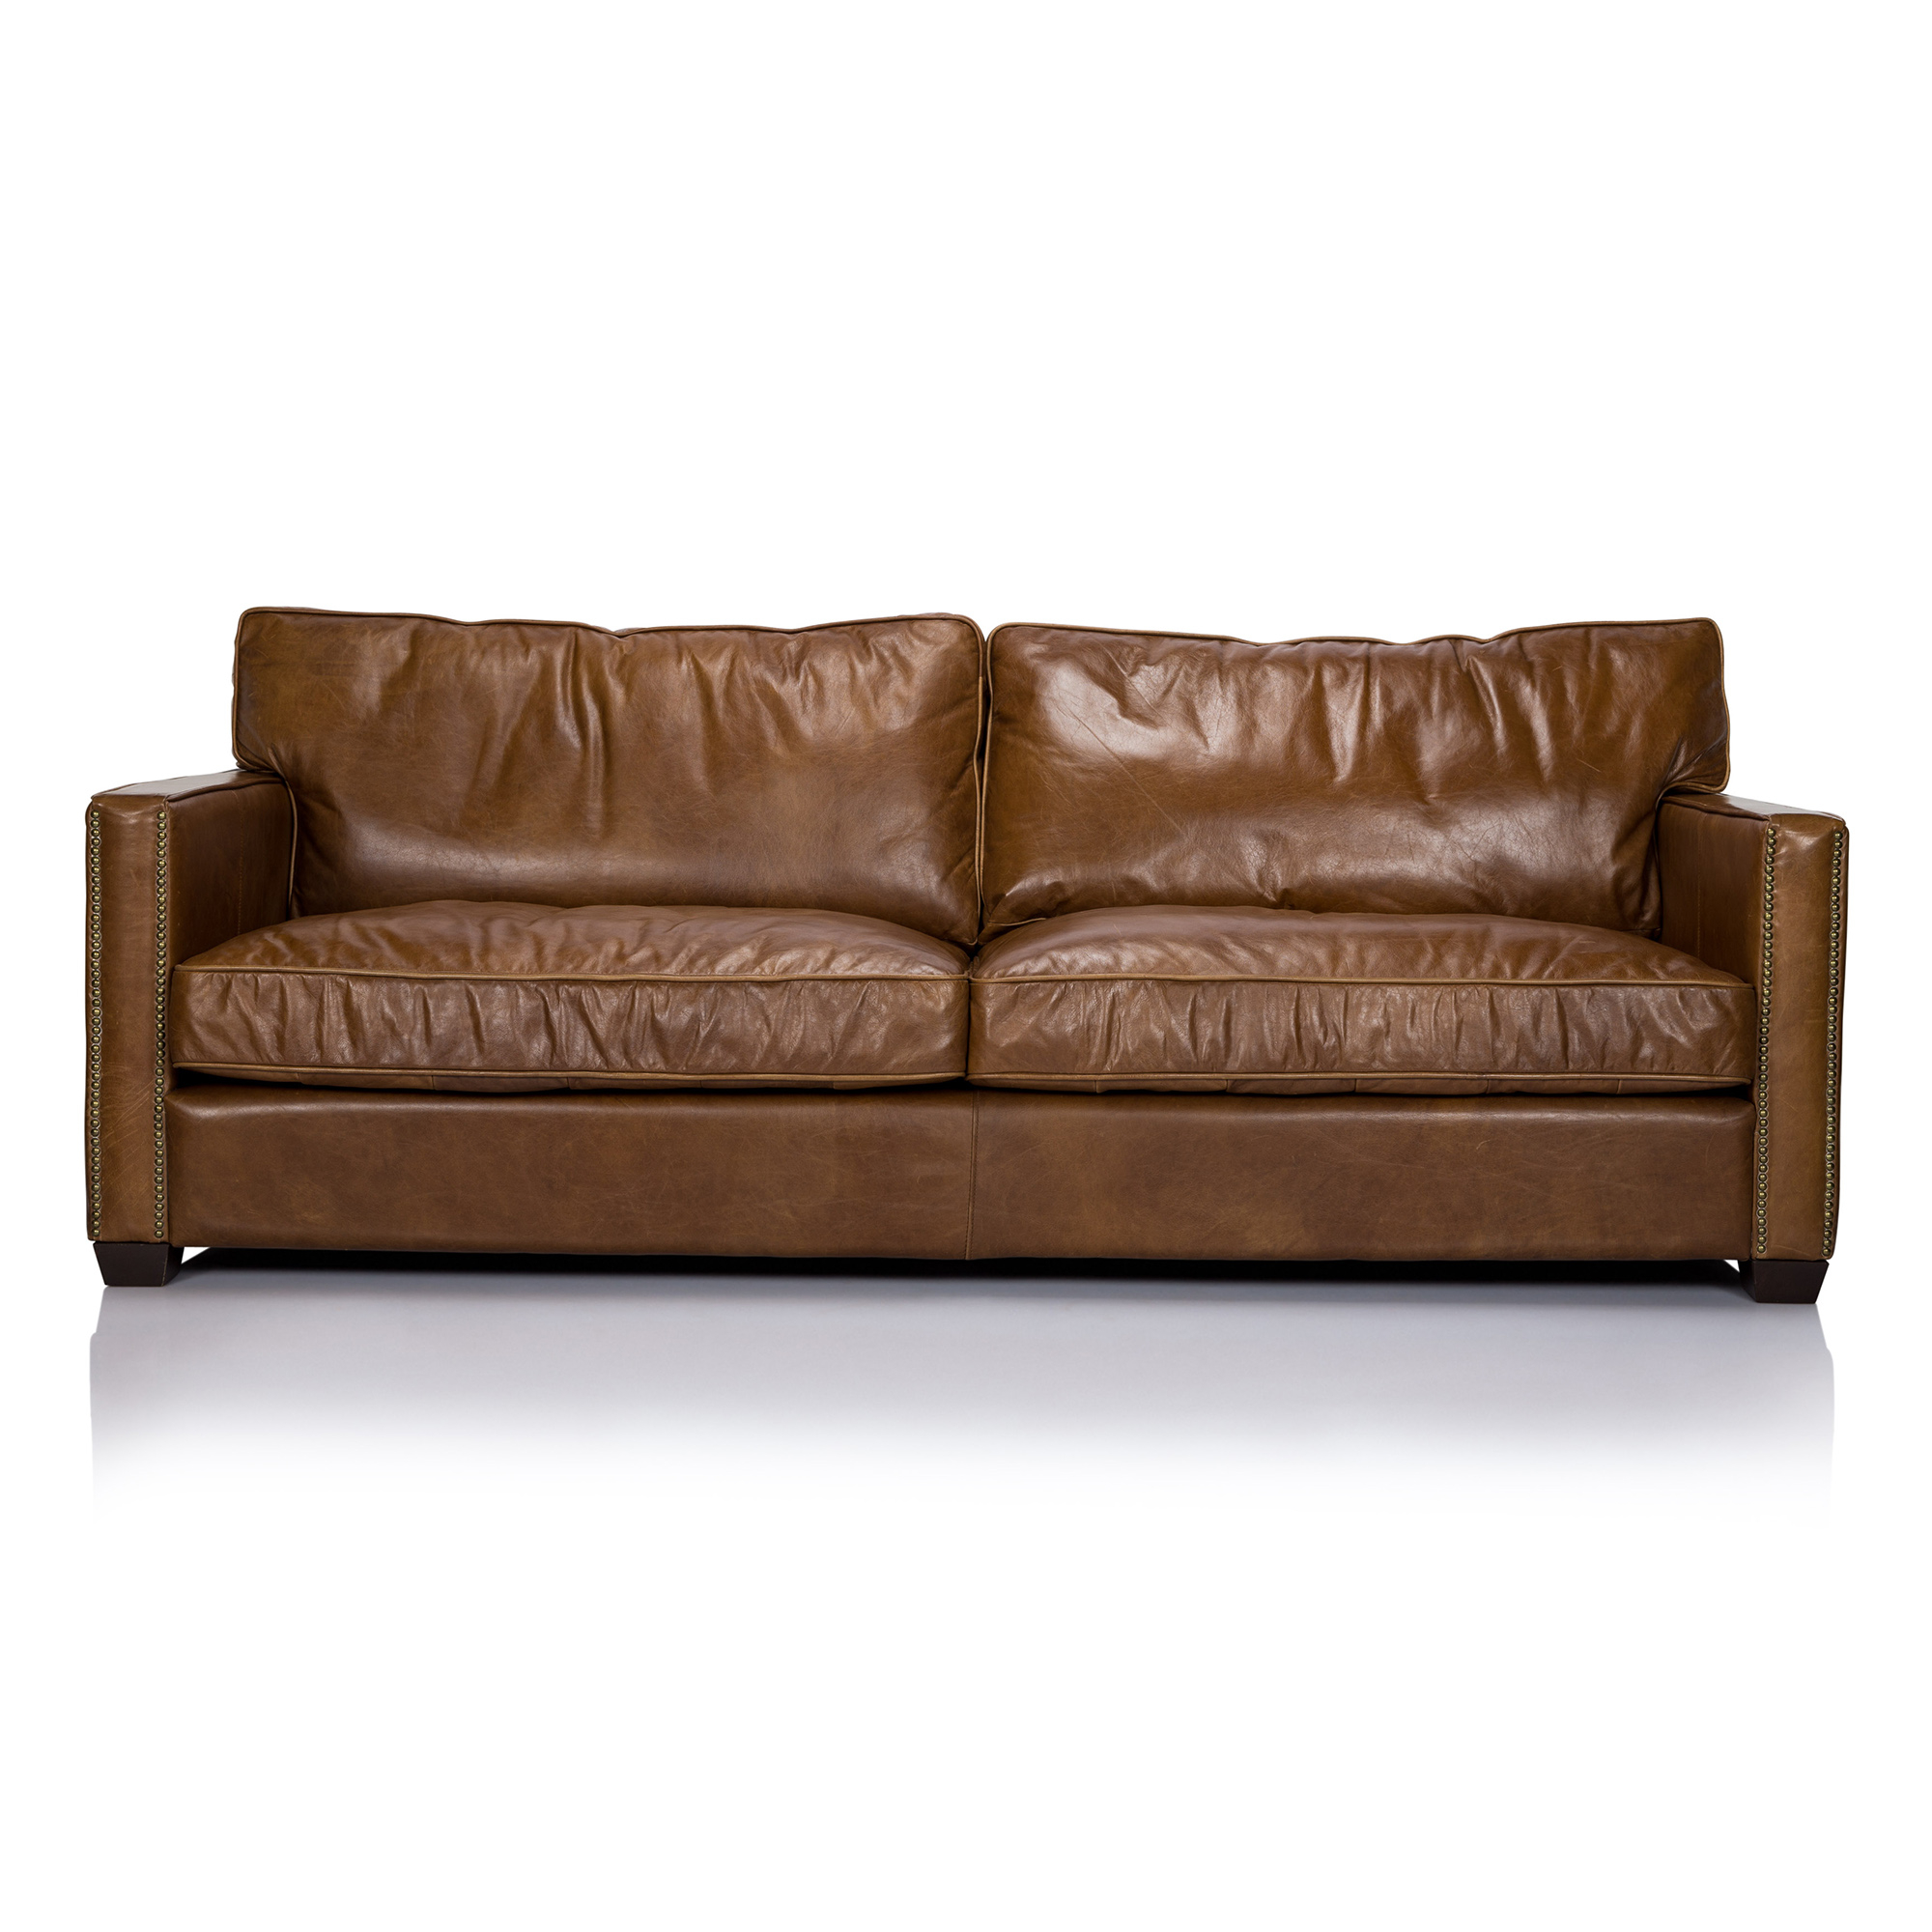 Stock sofas Dddy Viscount William sofa